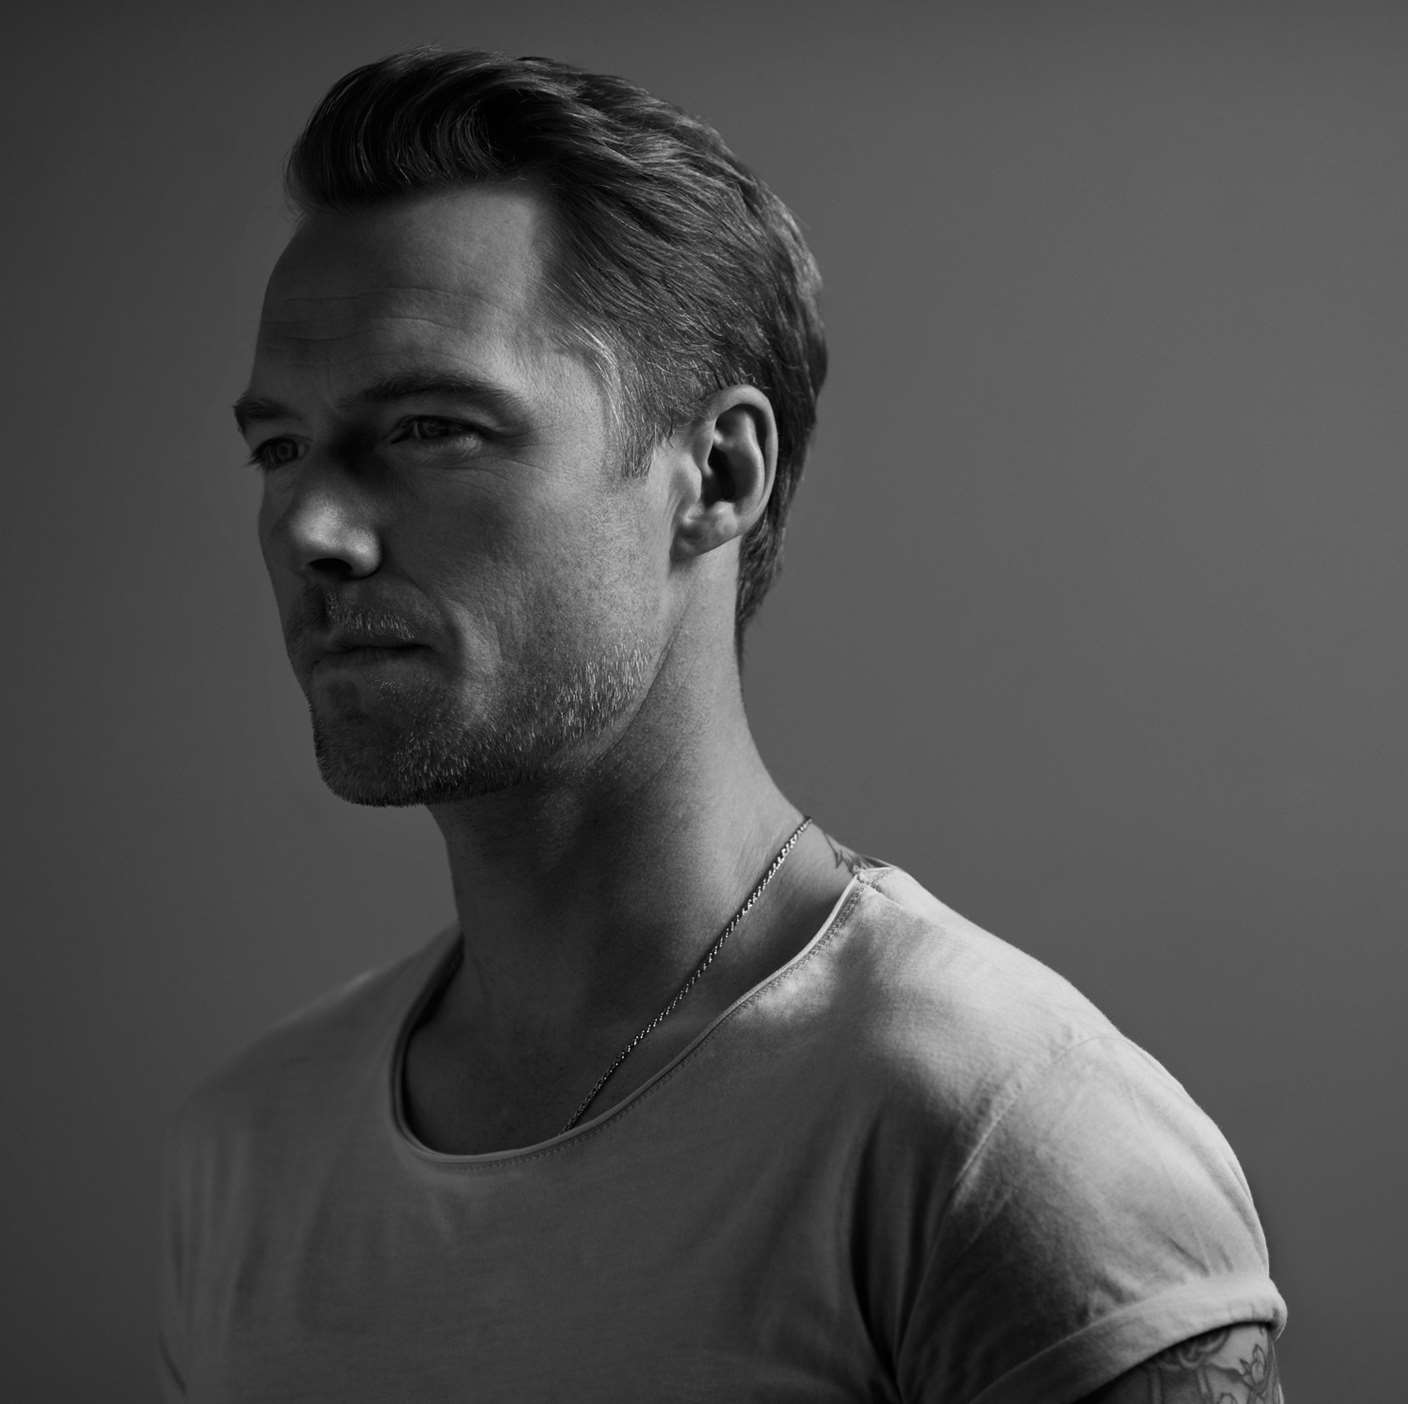 Ronan Keating will be playing the Castle Concerts 2018